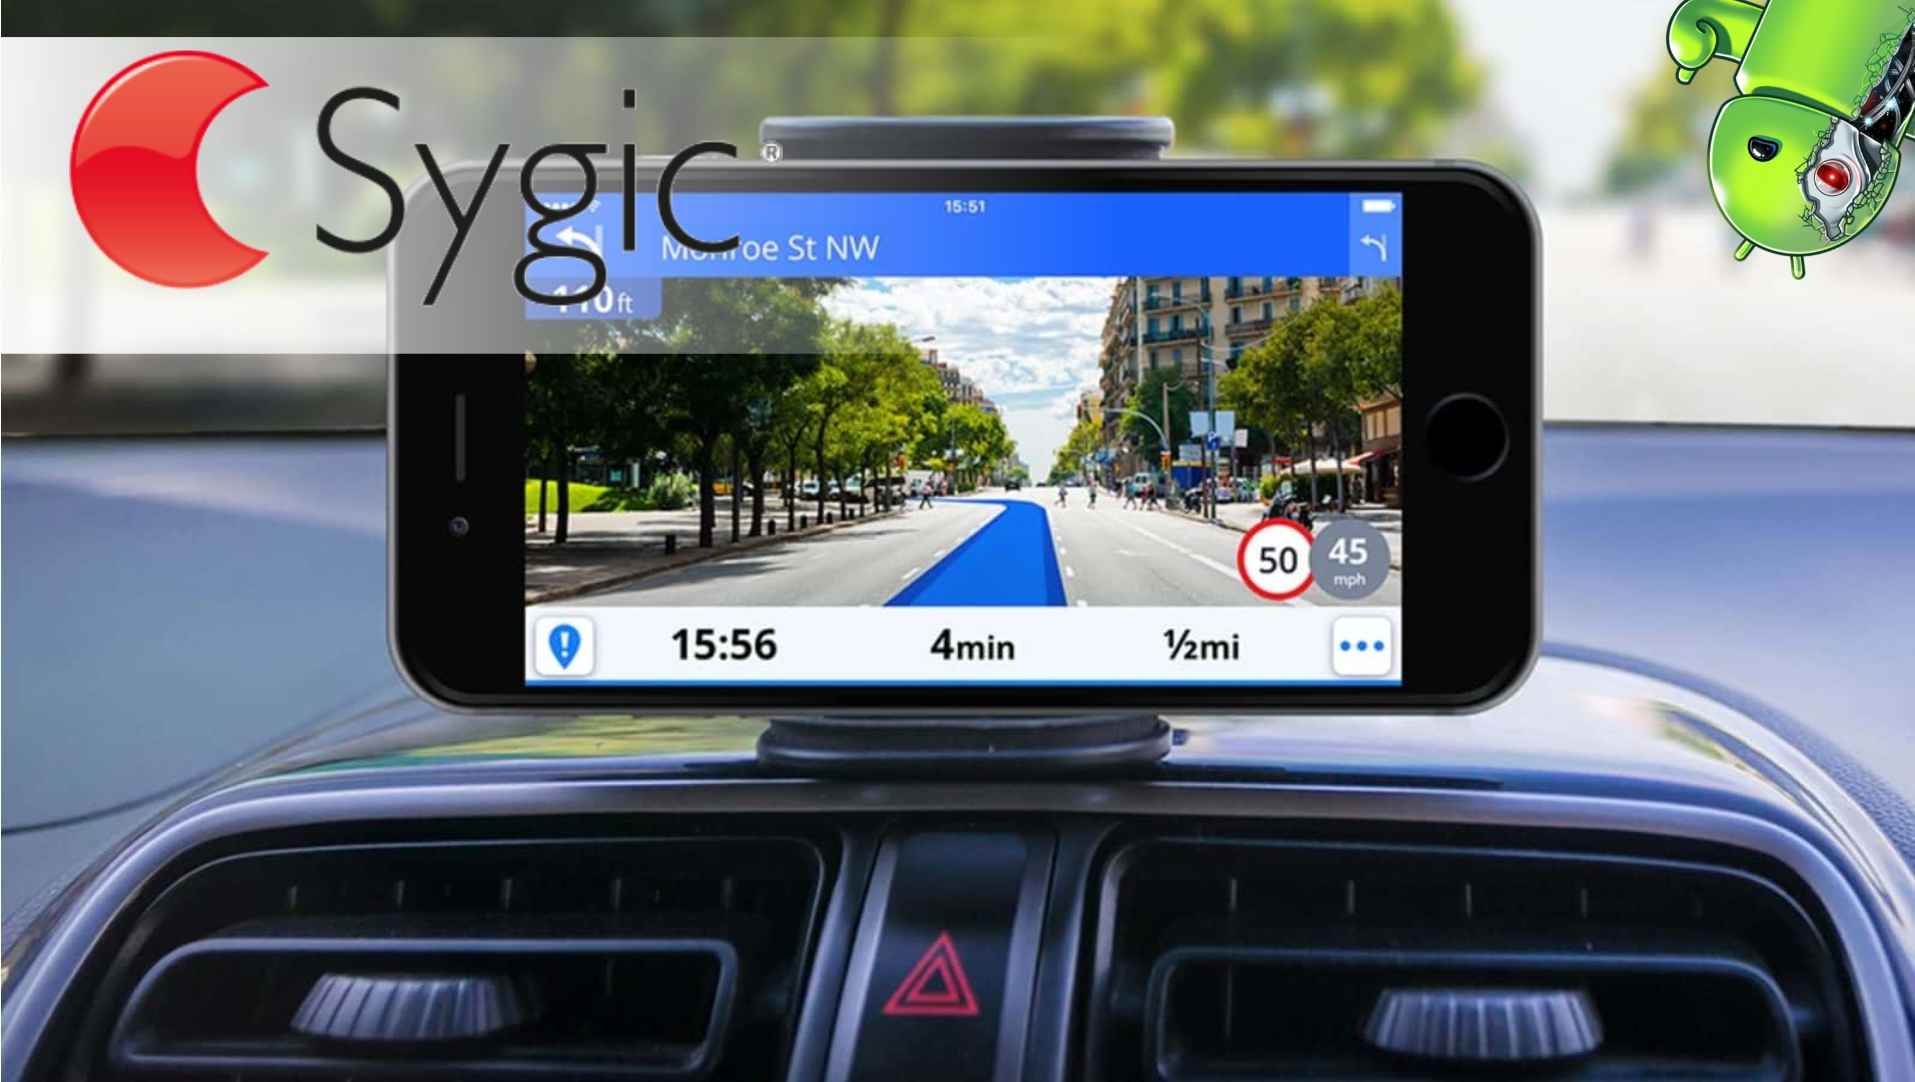 sygic gps android navigation maps eu sou android. Black Bedroom Furniture Sets. Home Design Ideas